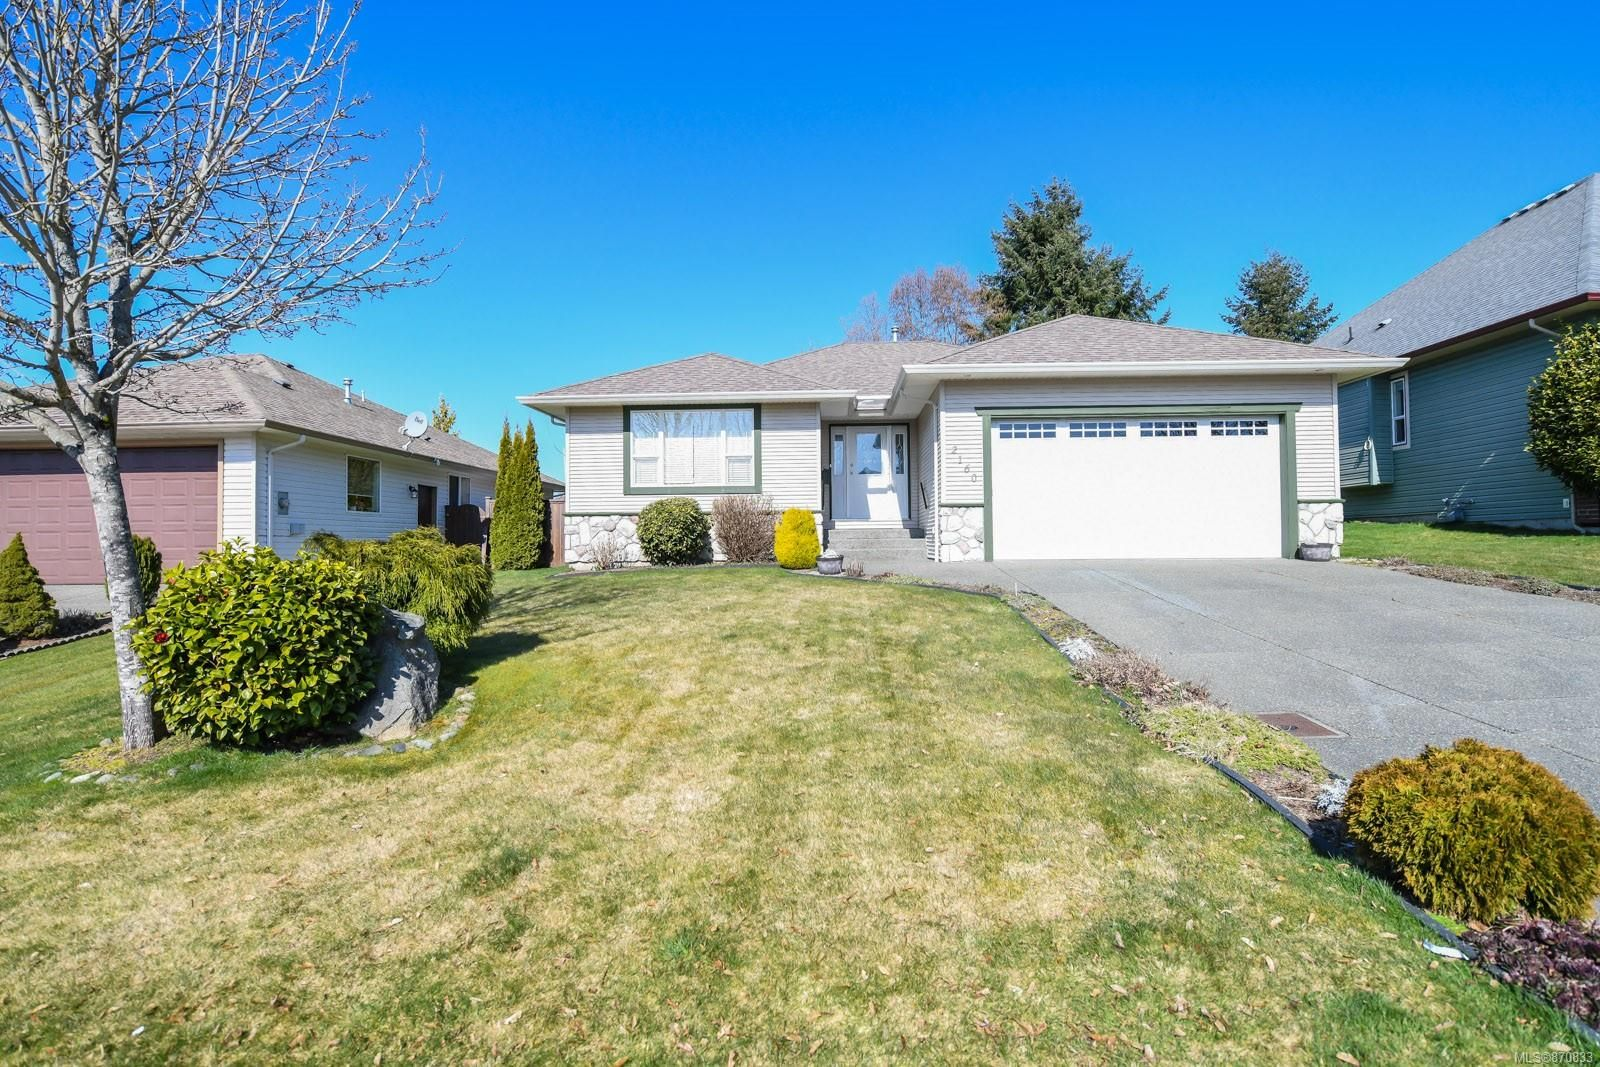 Main Photo: 2160 Stirling Cres in : CV Courtenay East House for sale (Comox Valley)  : MLS®# 870833